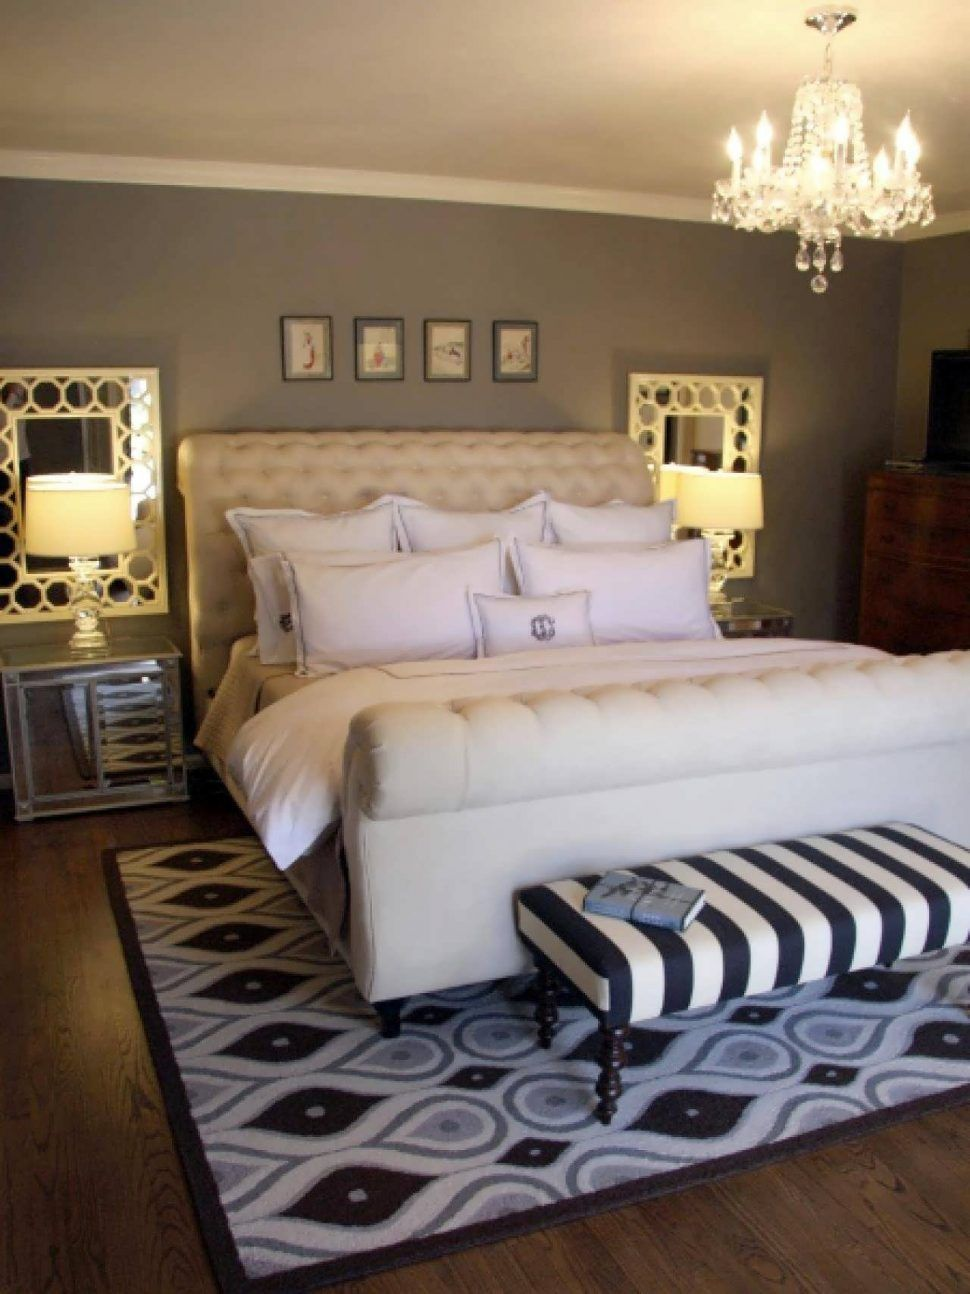 3 Inspiration Picture of Couple Bedroom Ideas